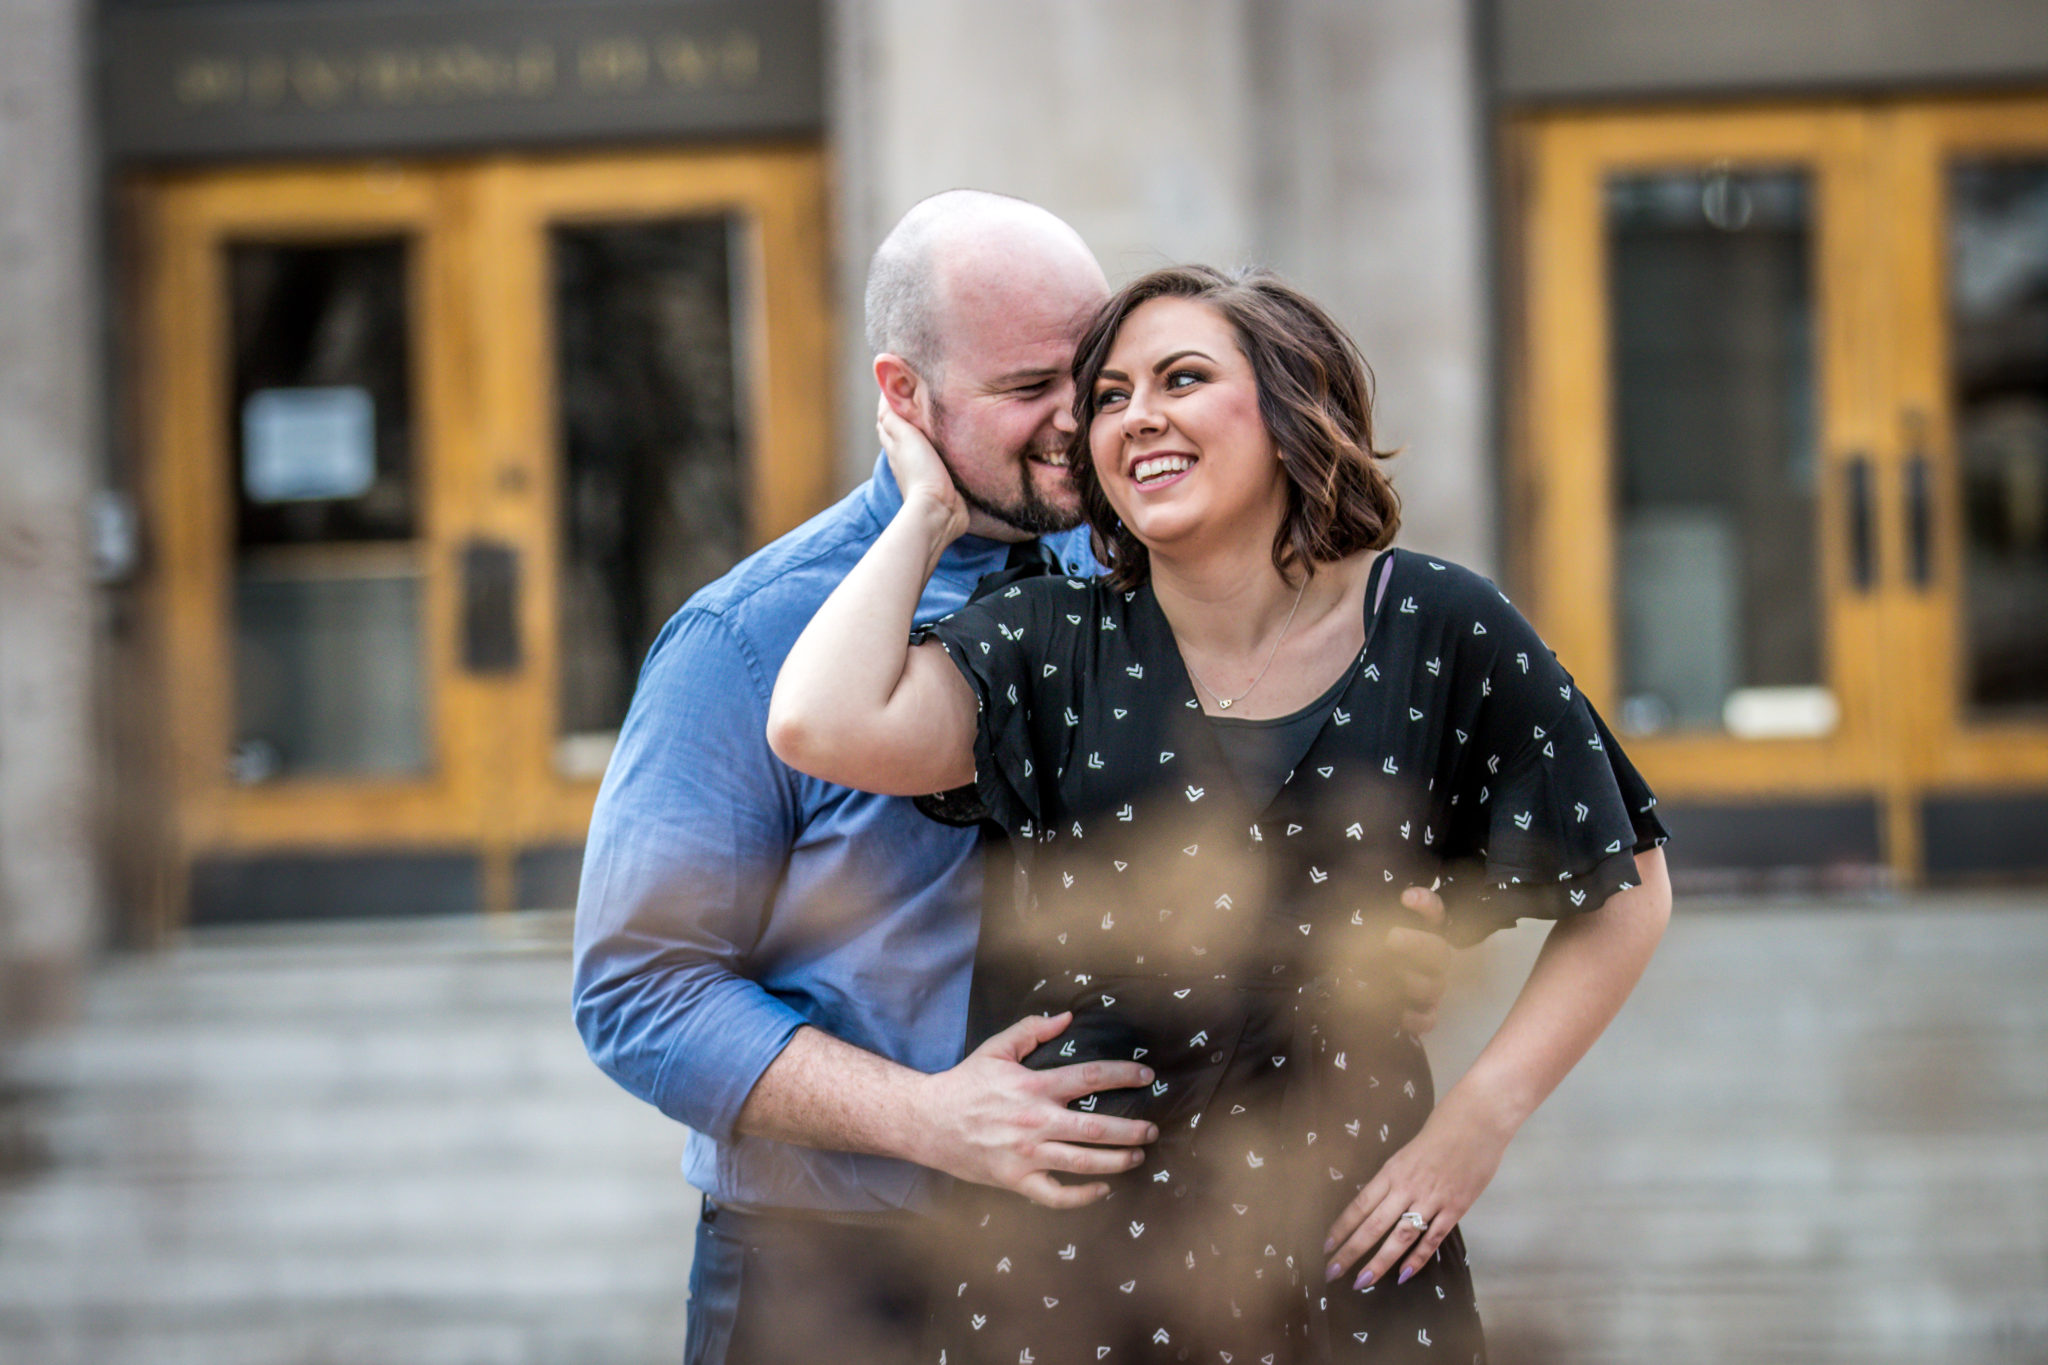 engagement wedding photo shoot  photography salt lake city utah Ryan hender films best utah wedding videographers